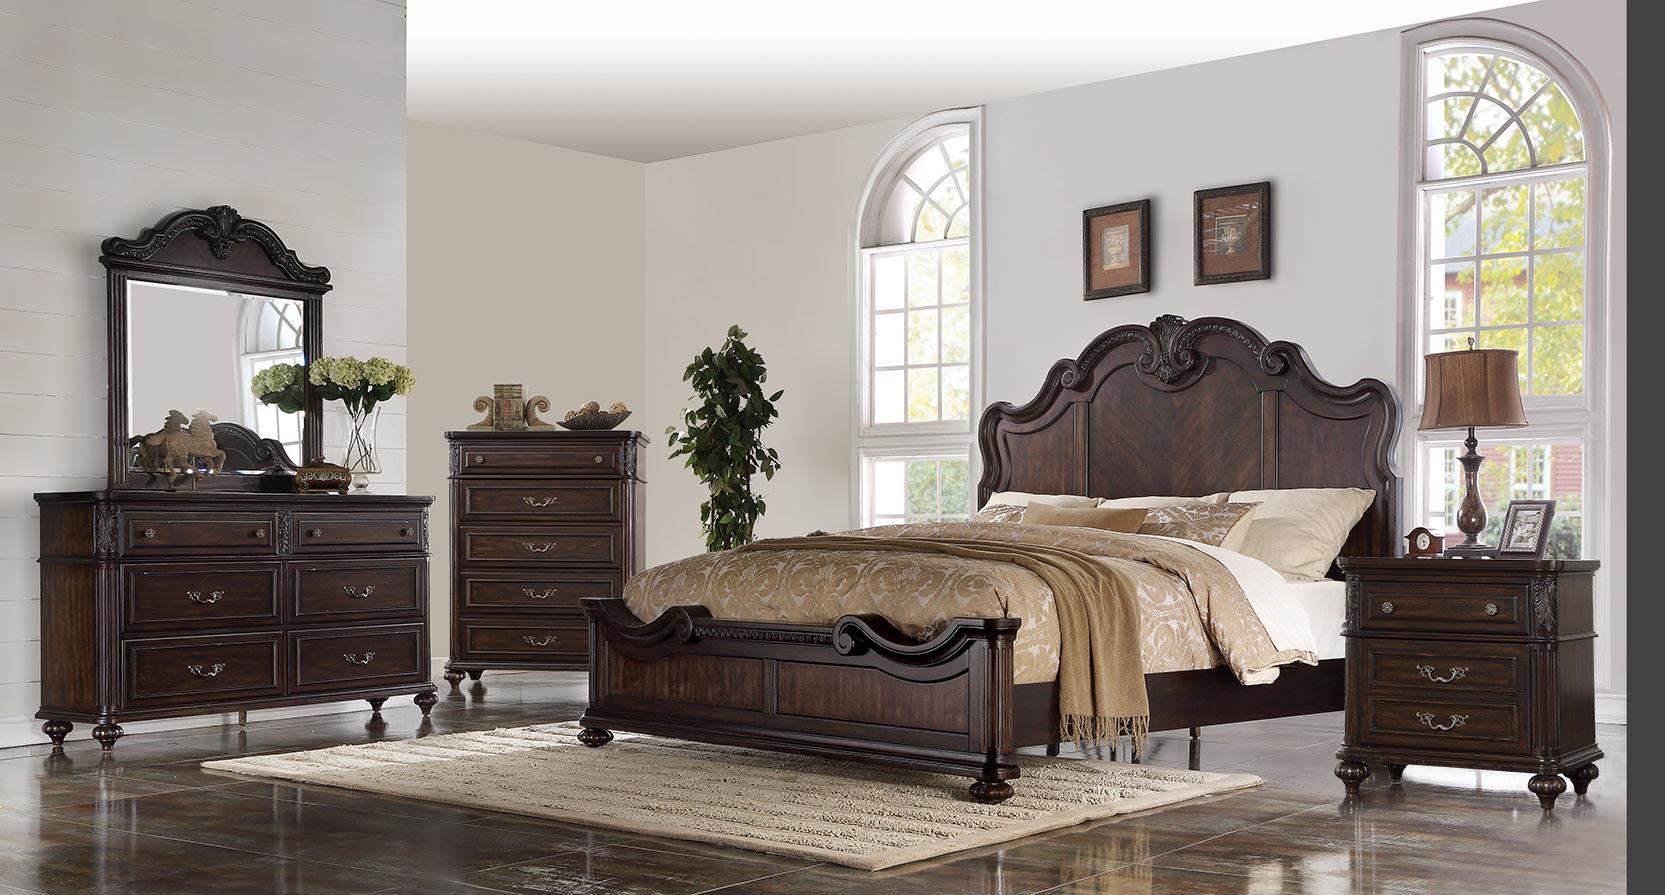 1610 Nottingham King 6 Piece Bedroom Set  $1795